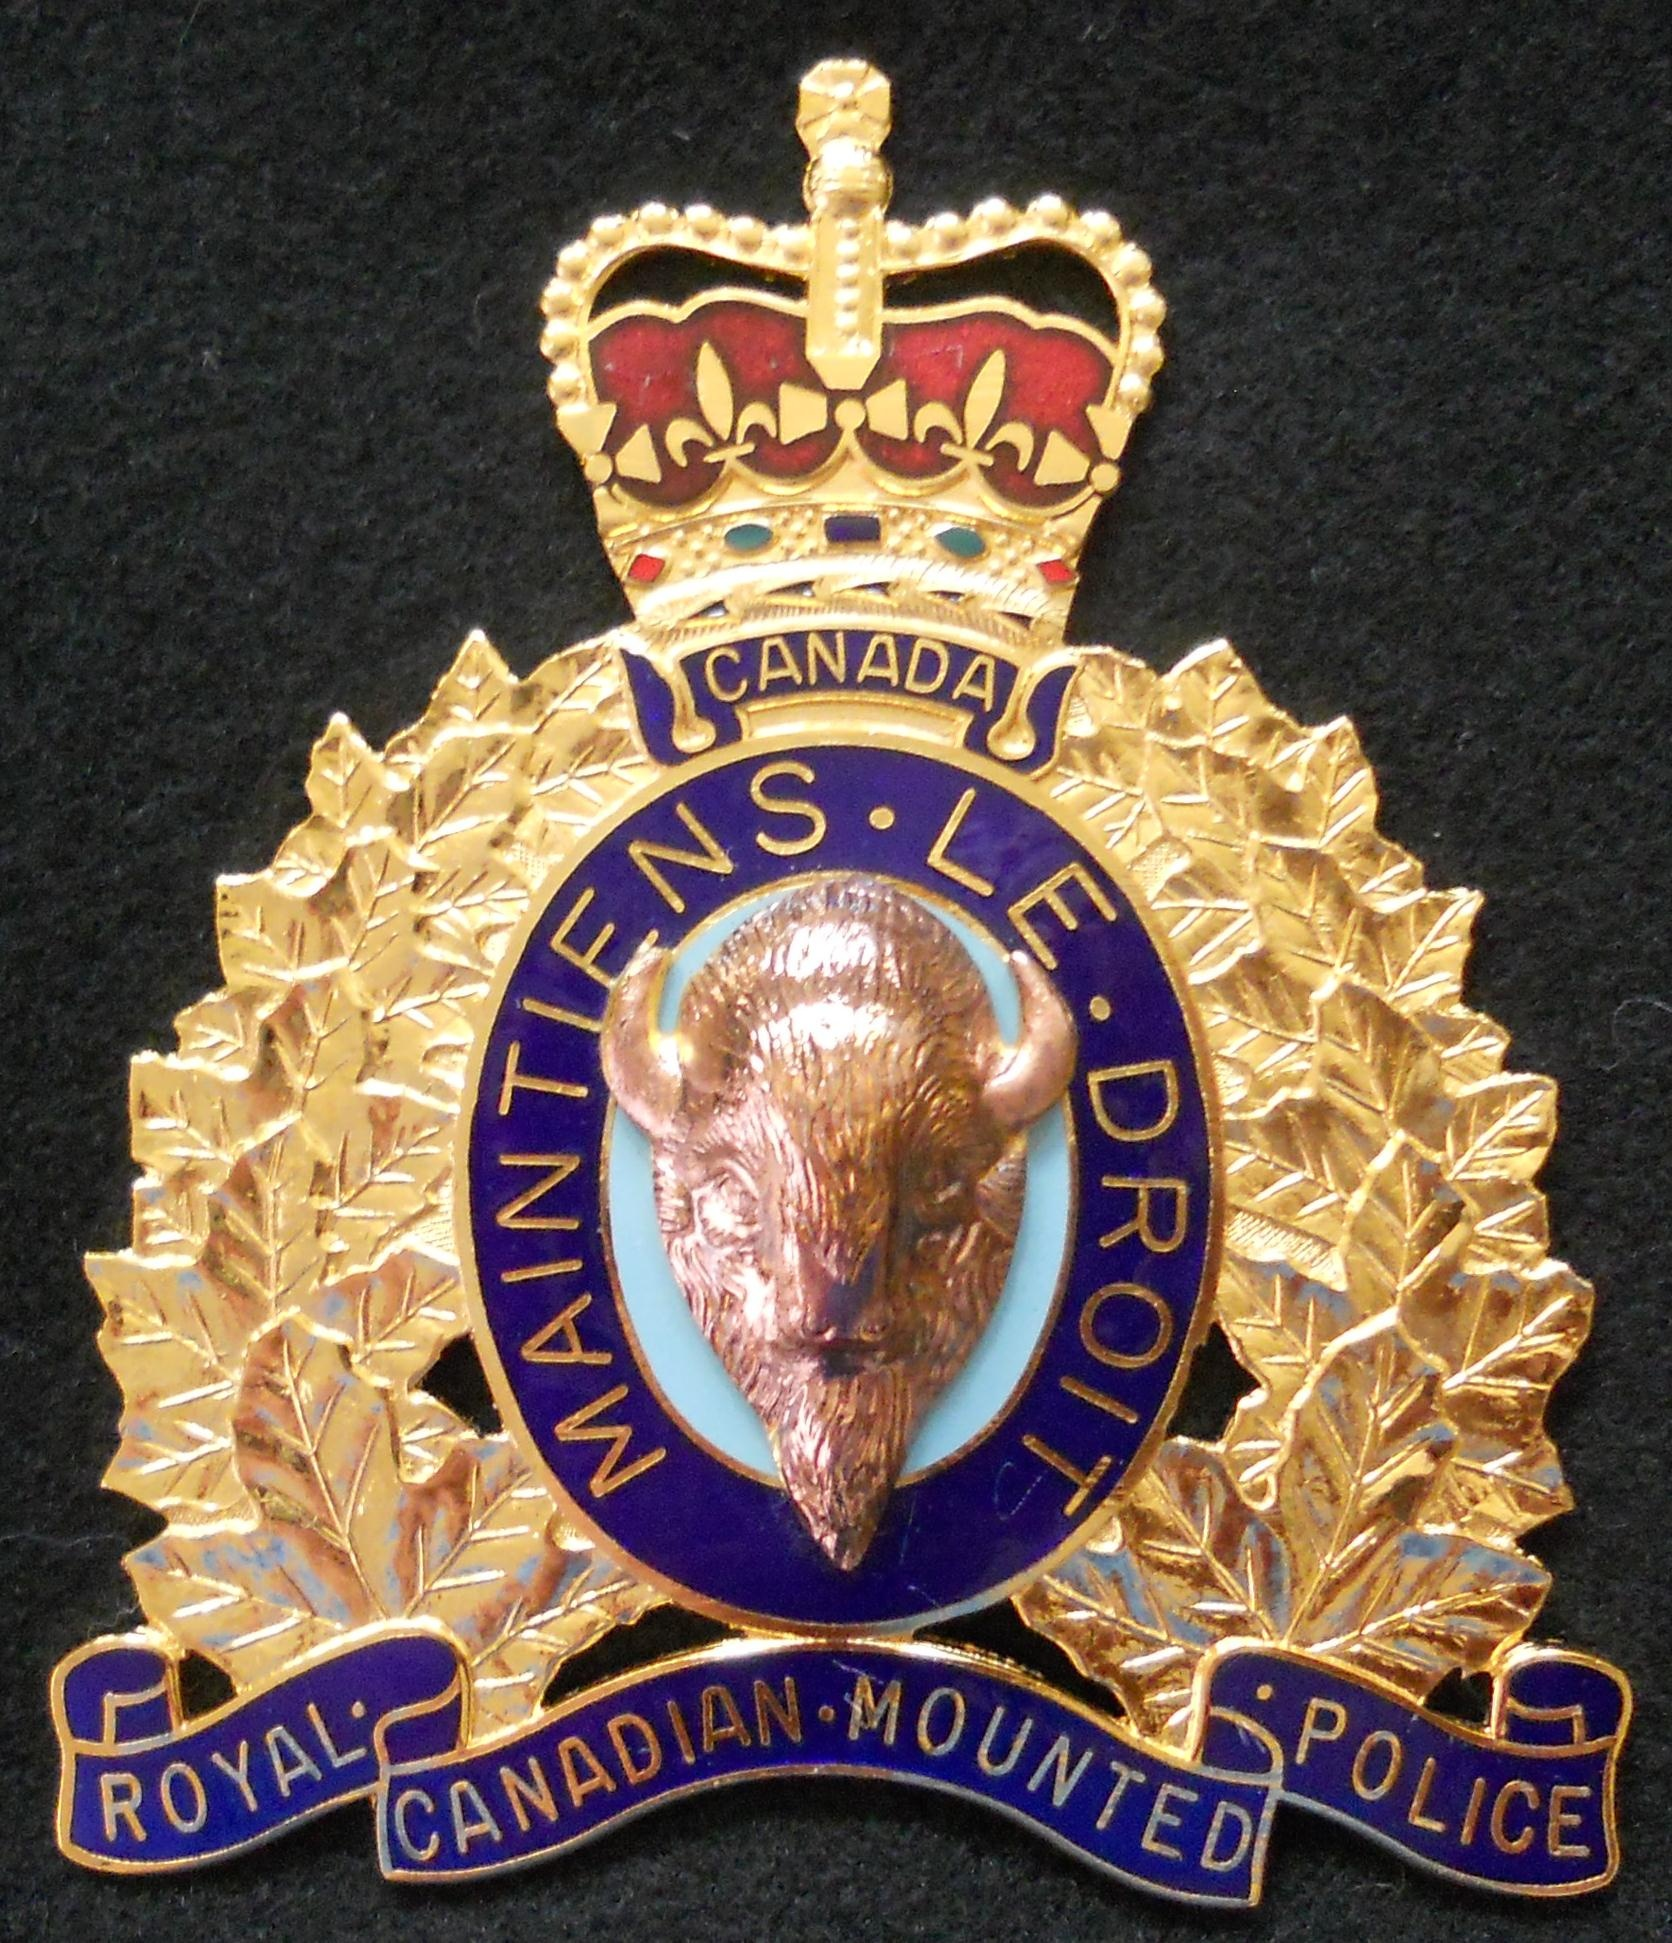 DEADLY COLLISION ON THE SADDLE LAKE CREE NATION